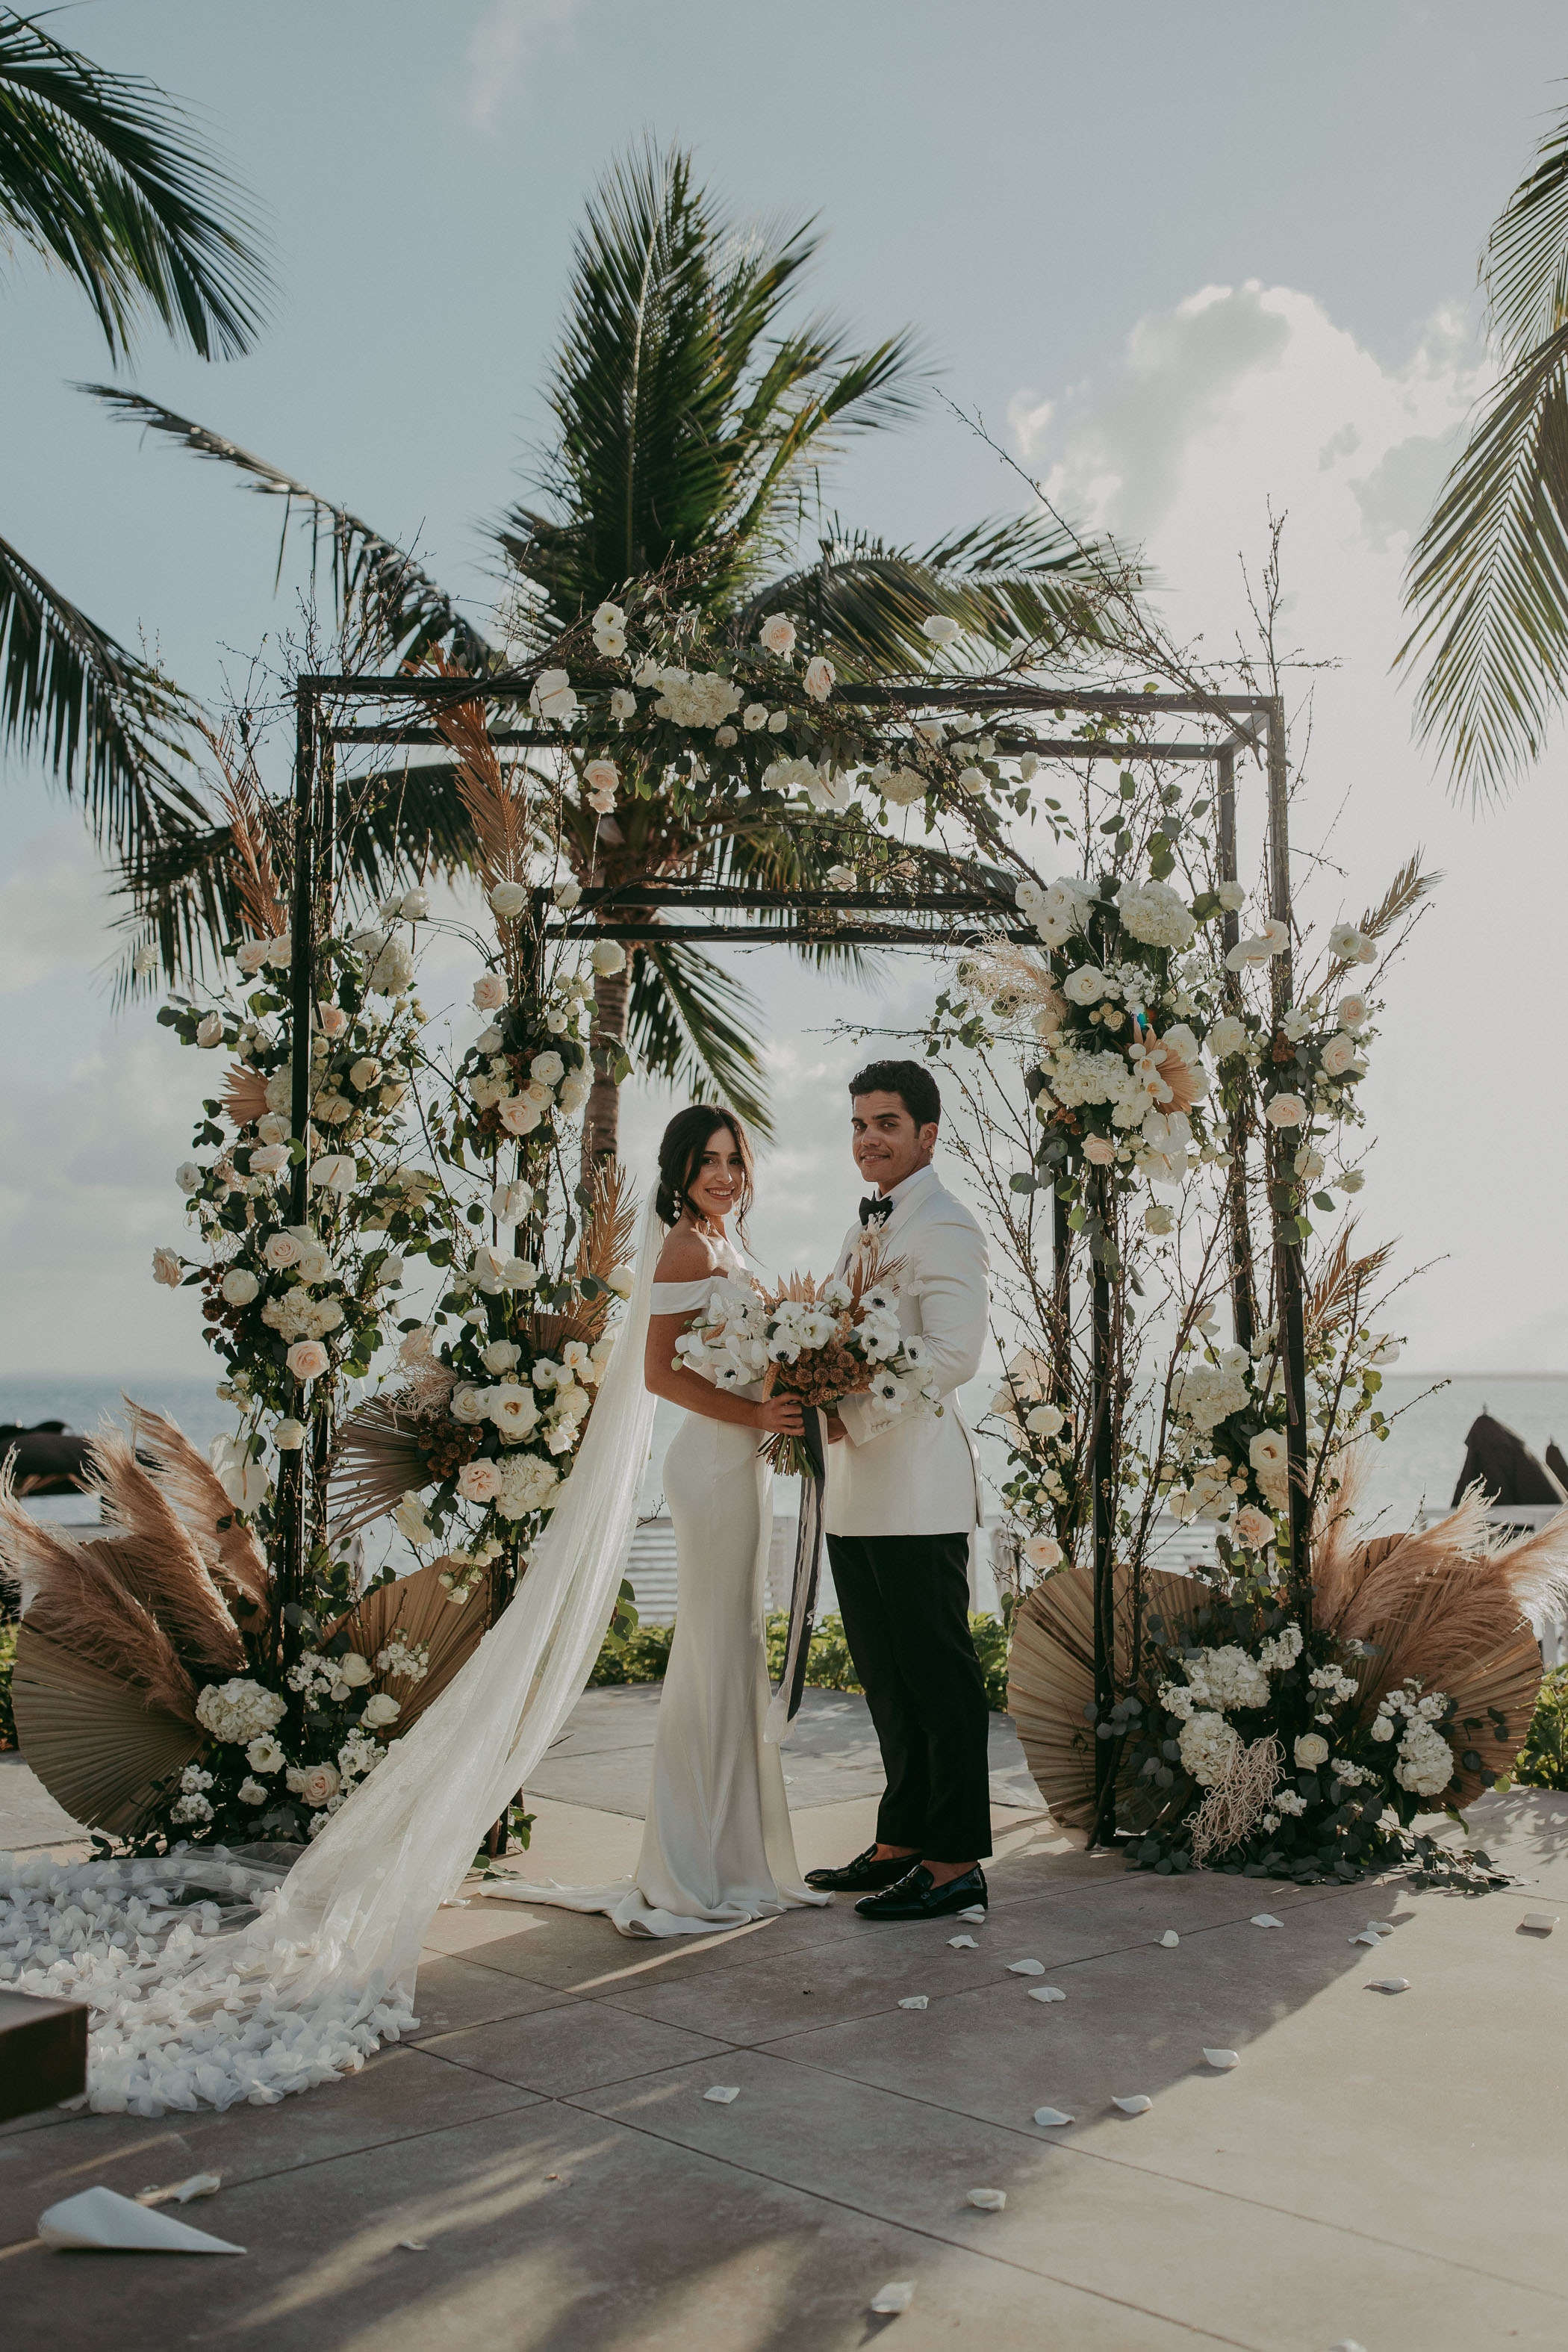 Bride and groom in front of their ceremony arch covered in white flowers